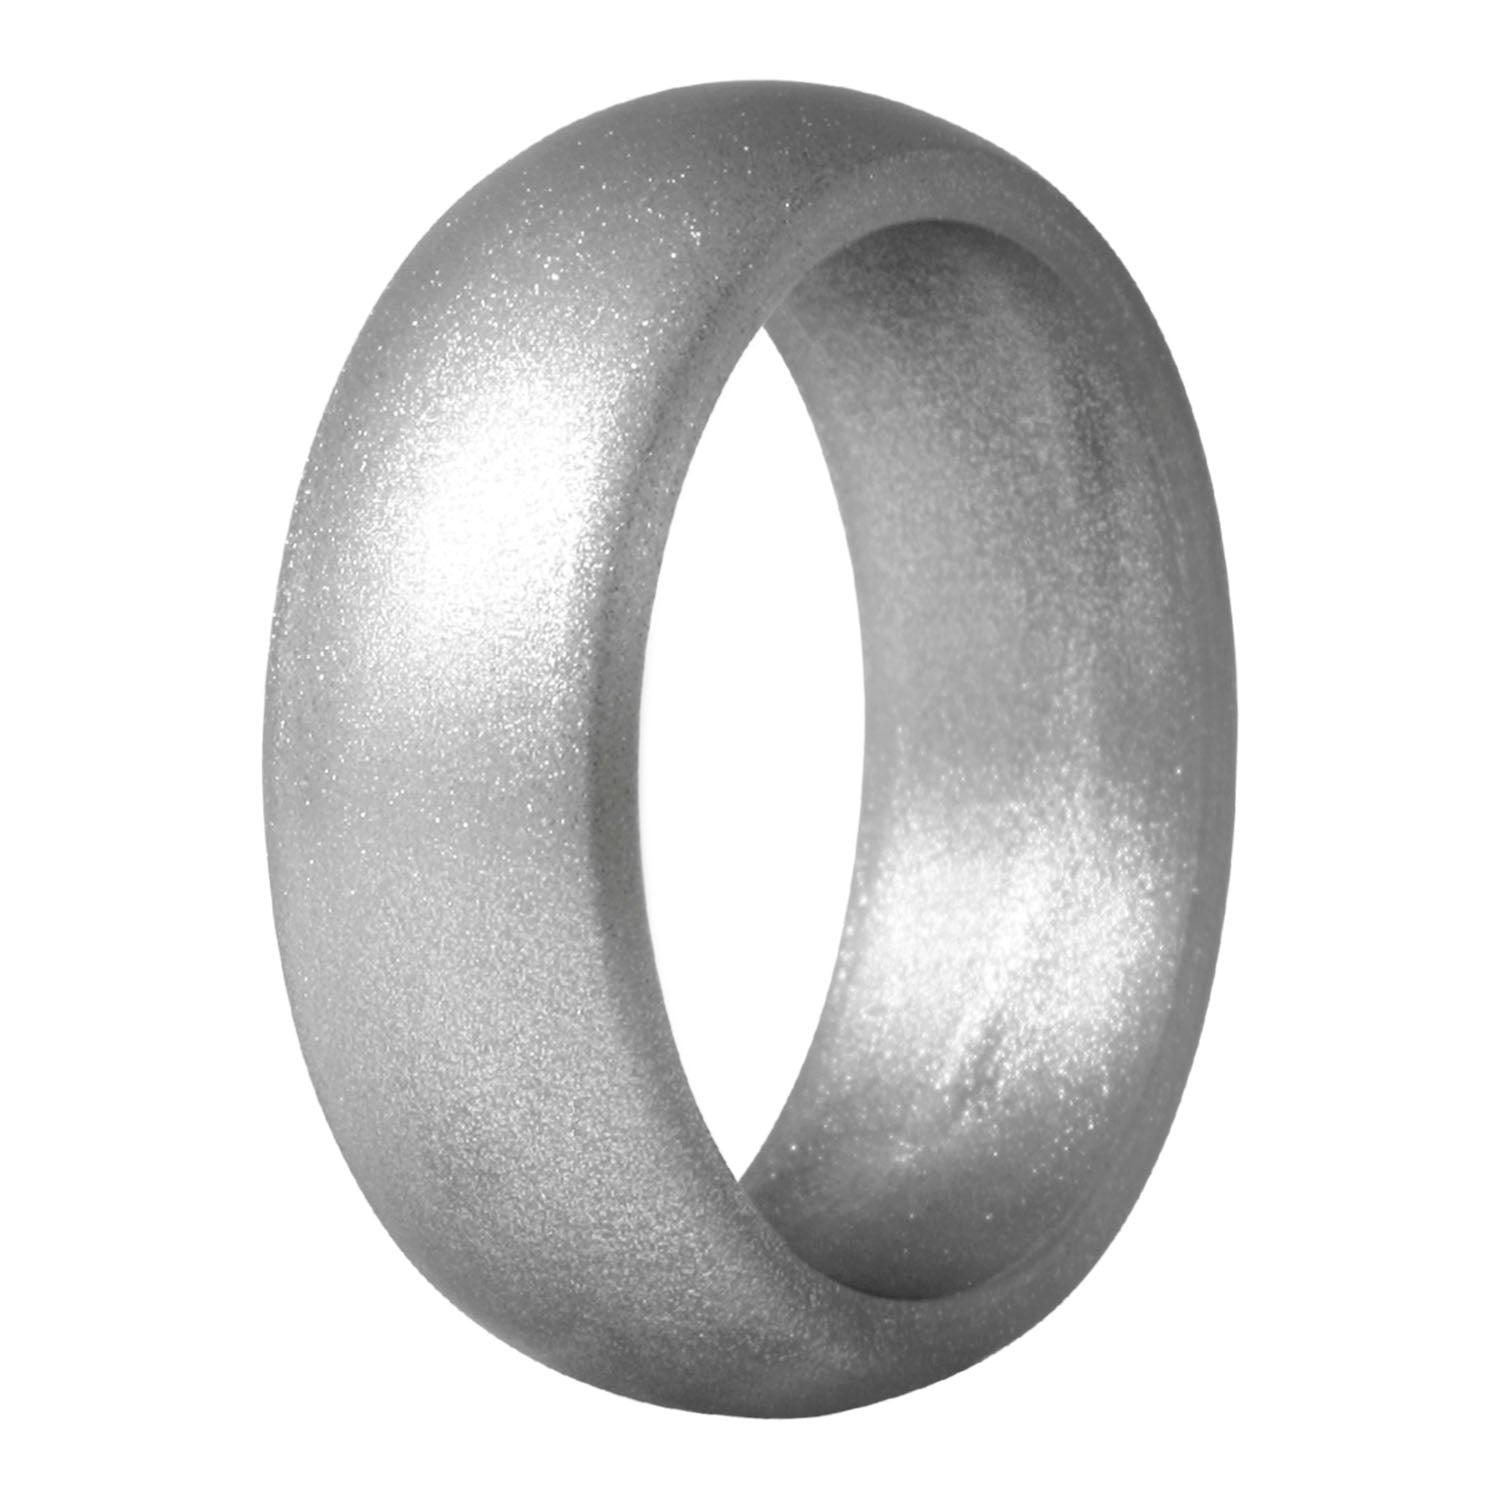 Men's Round Silicone Ring - Silver